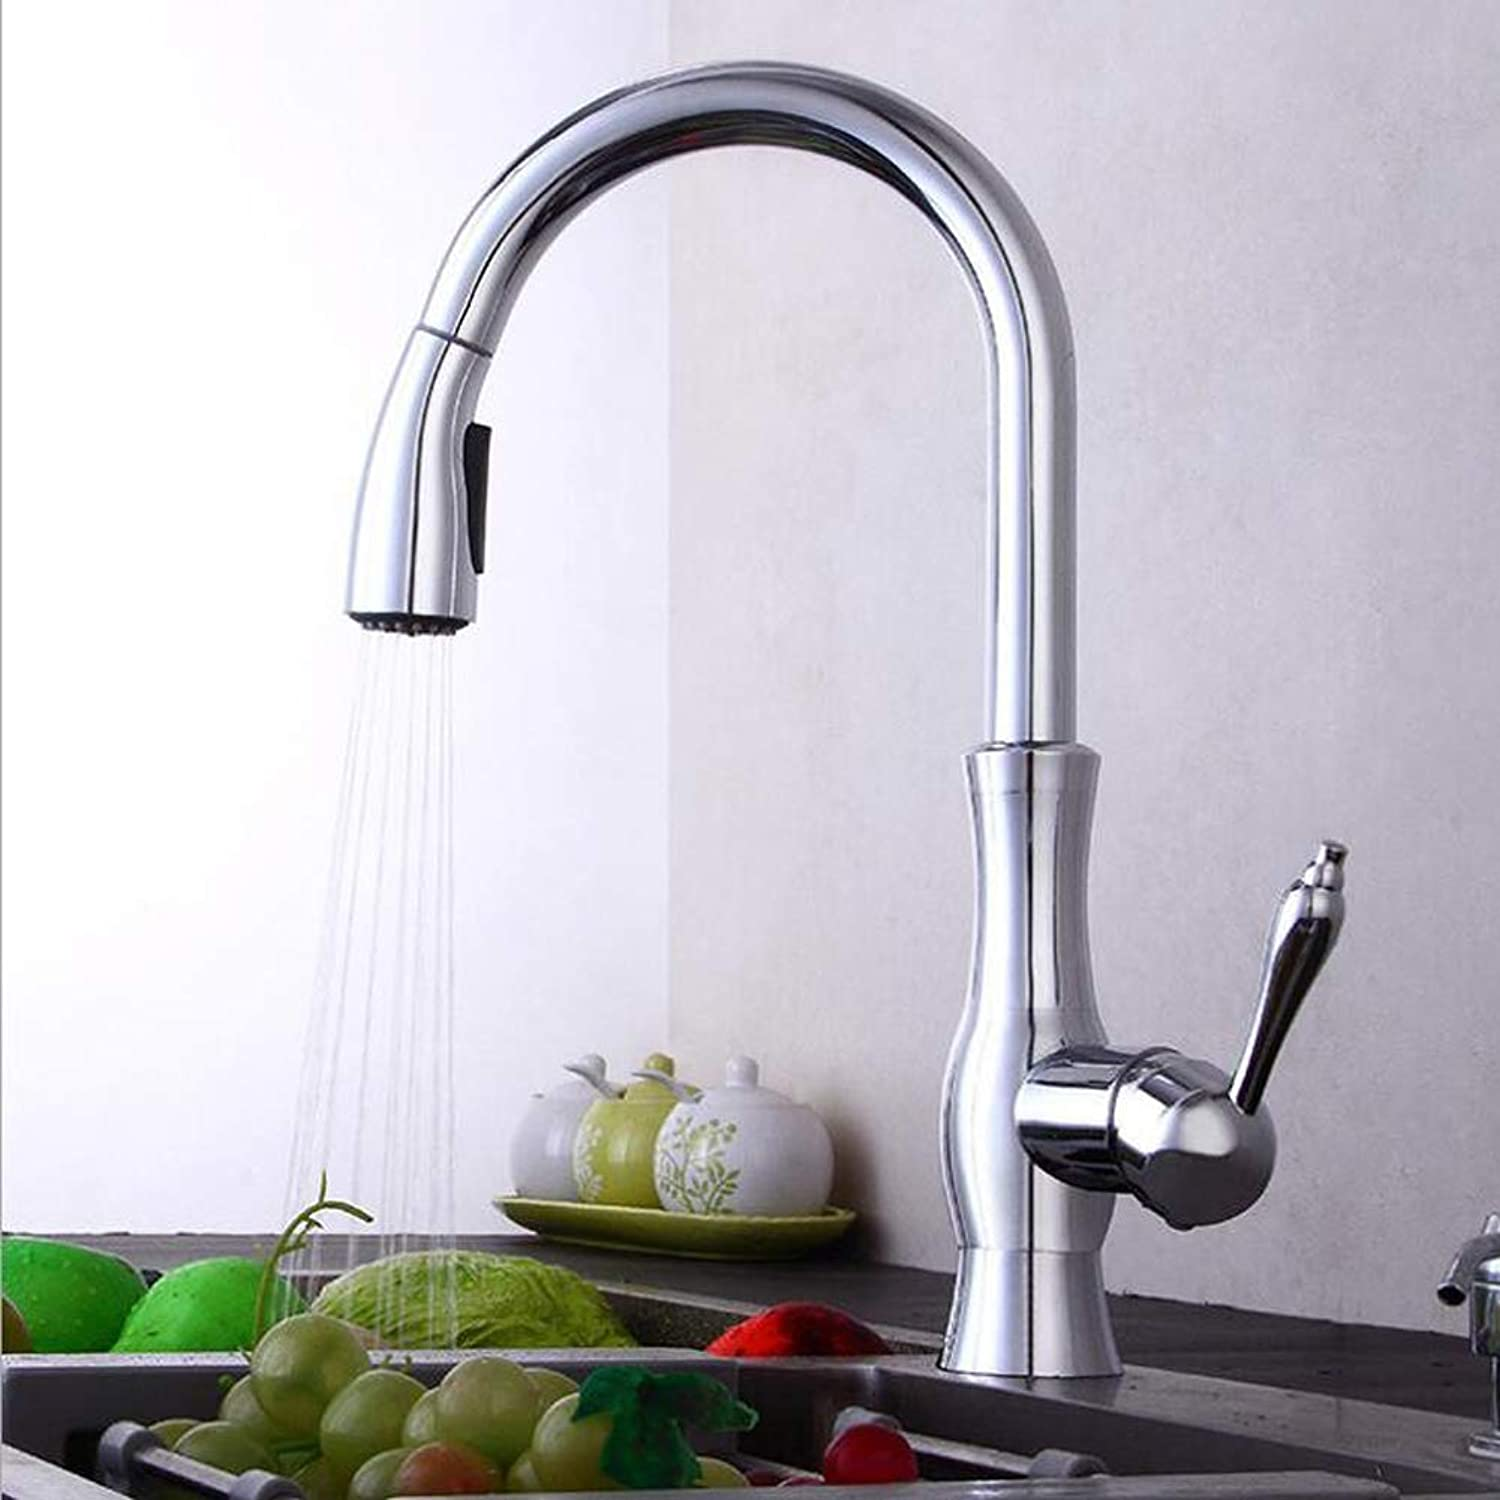 Single Handle Kitchen Faucet,Modern Kitchen Sink Faucets,360° redating hot and Cold Water is Easy Control of Water temperatu.